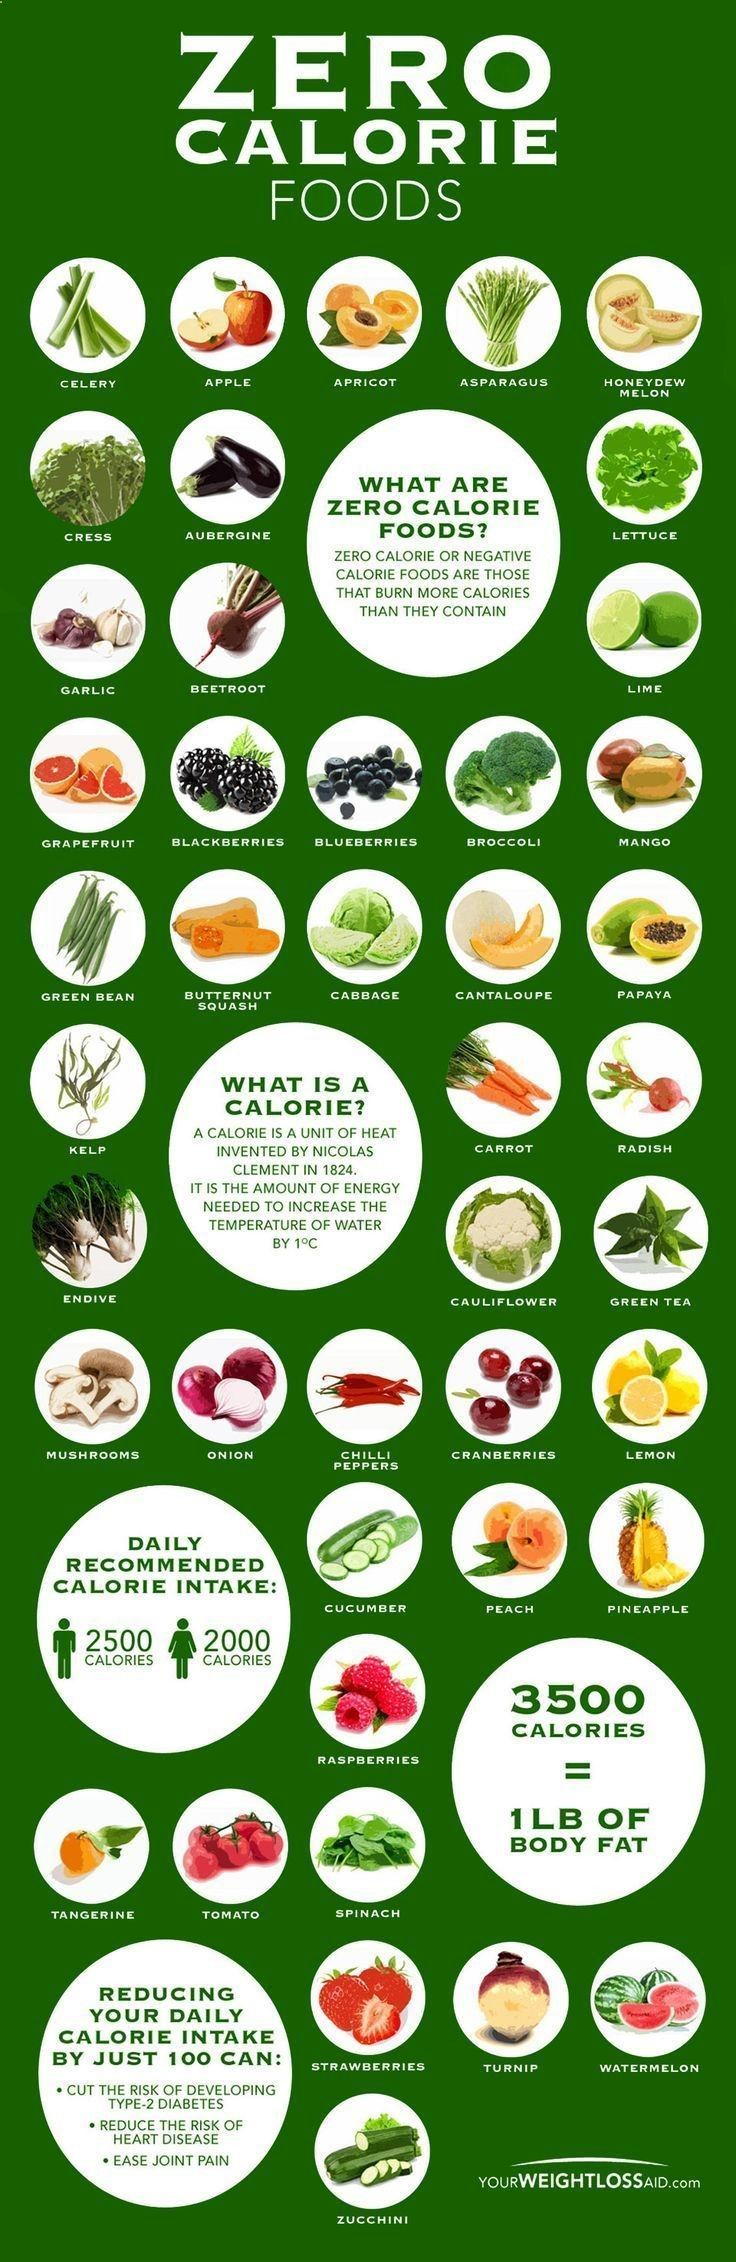 Best weight loss diet for 30 days picture 7